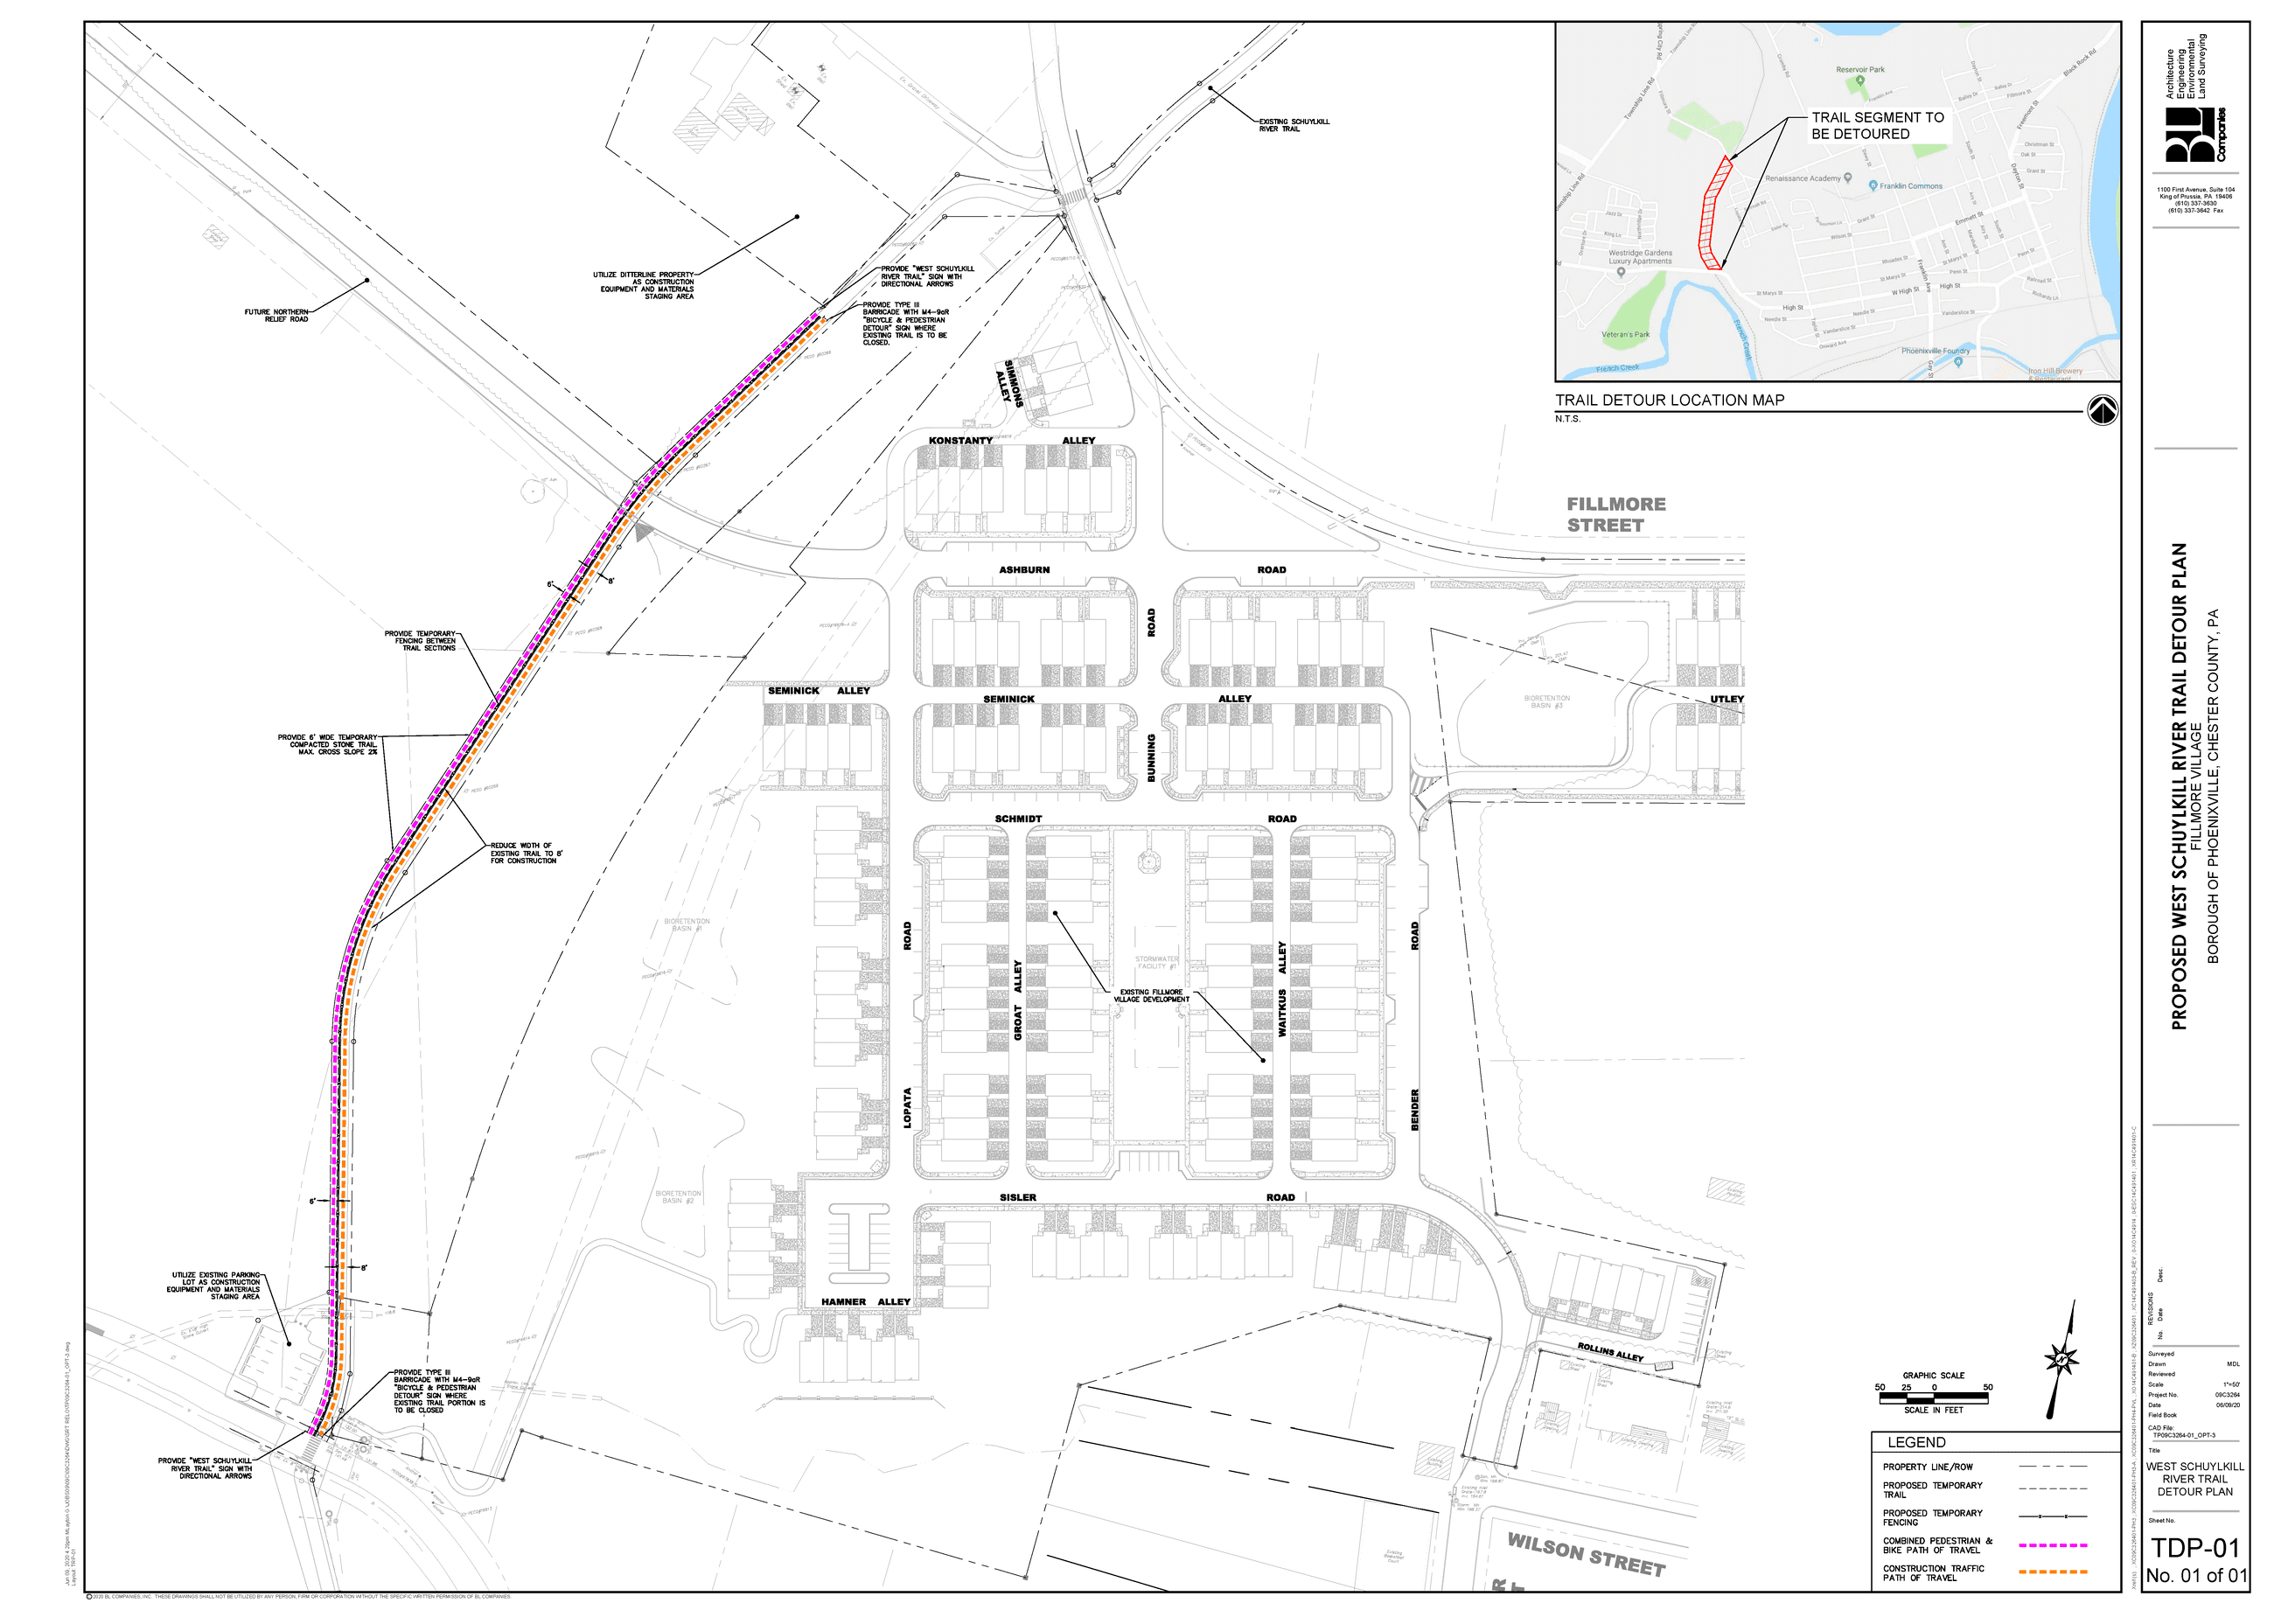 SRT Construction Map - December 2020 to February 2021